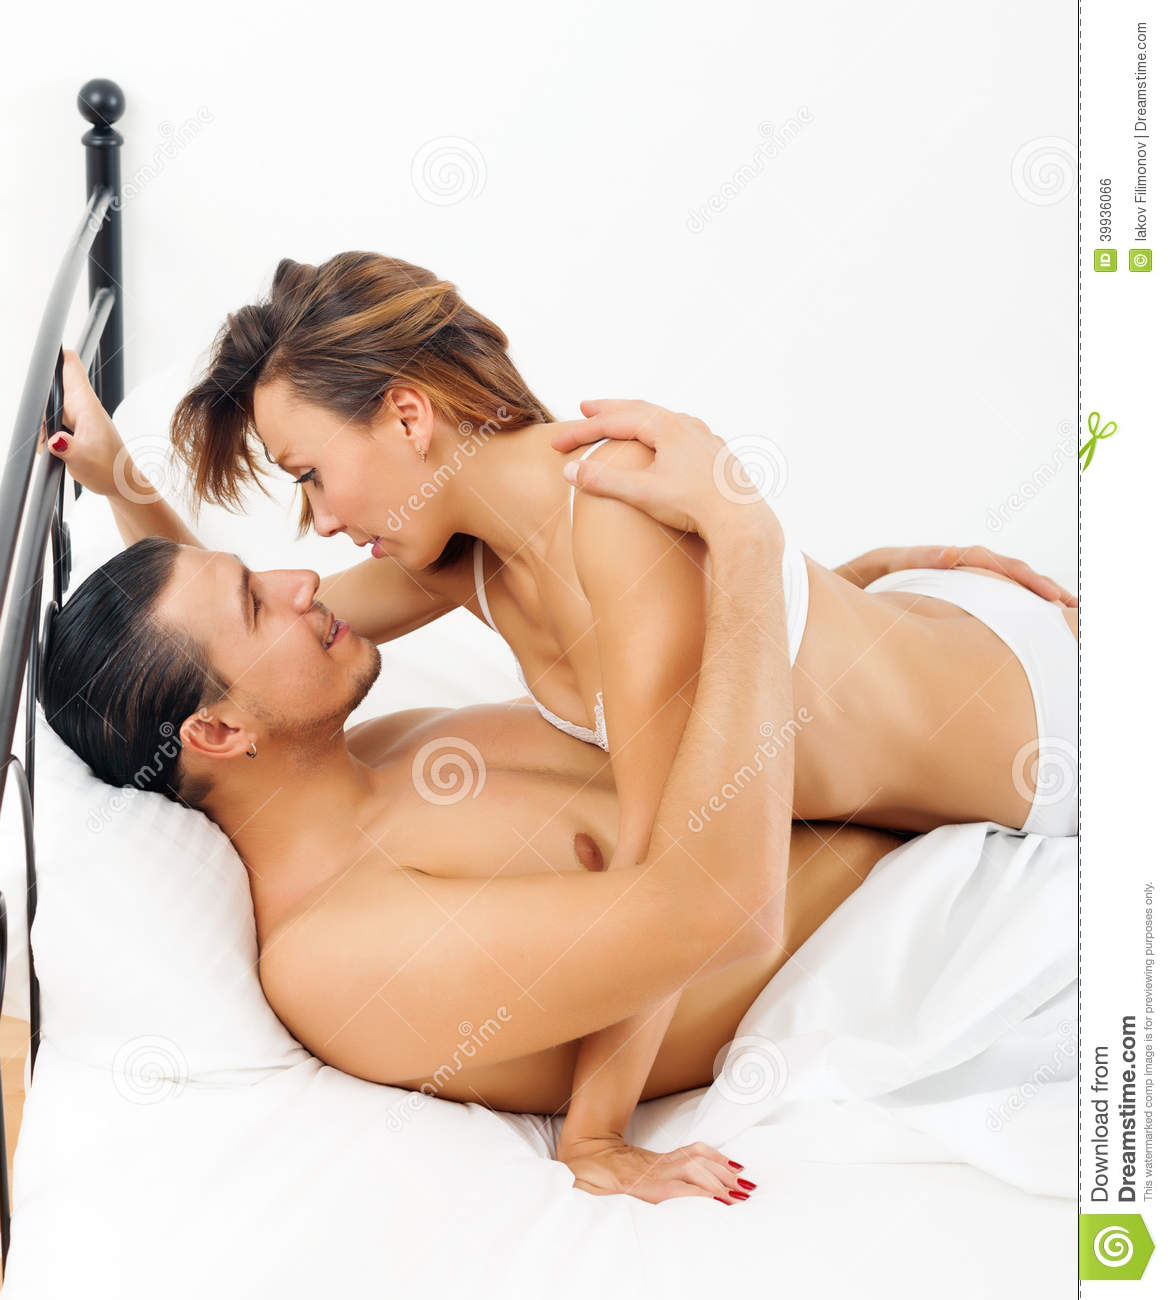 Handsome Guy Having Sex With Woman Stock Photo - Image Of -9729